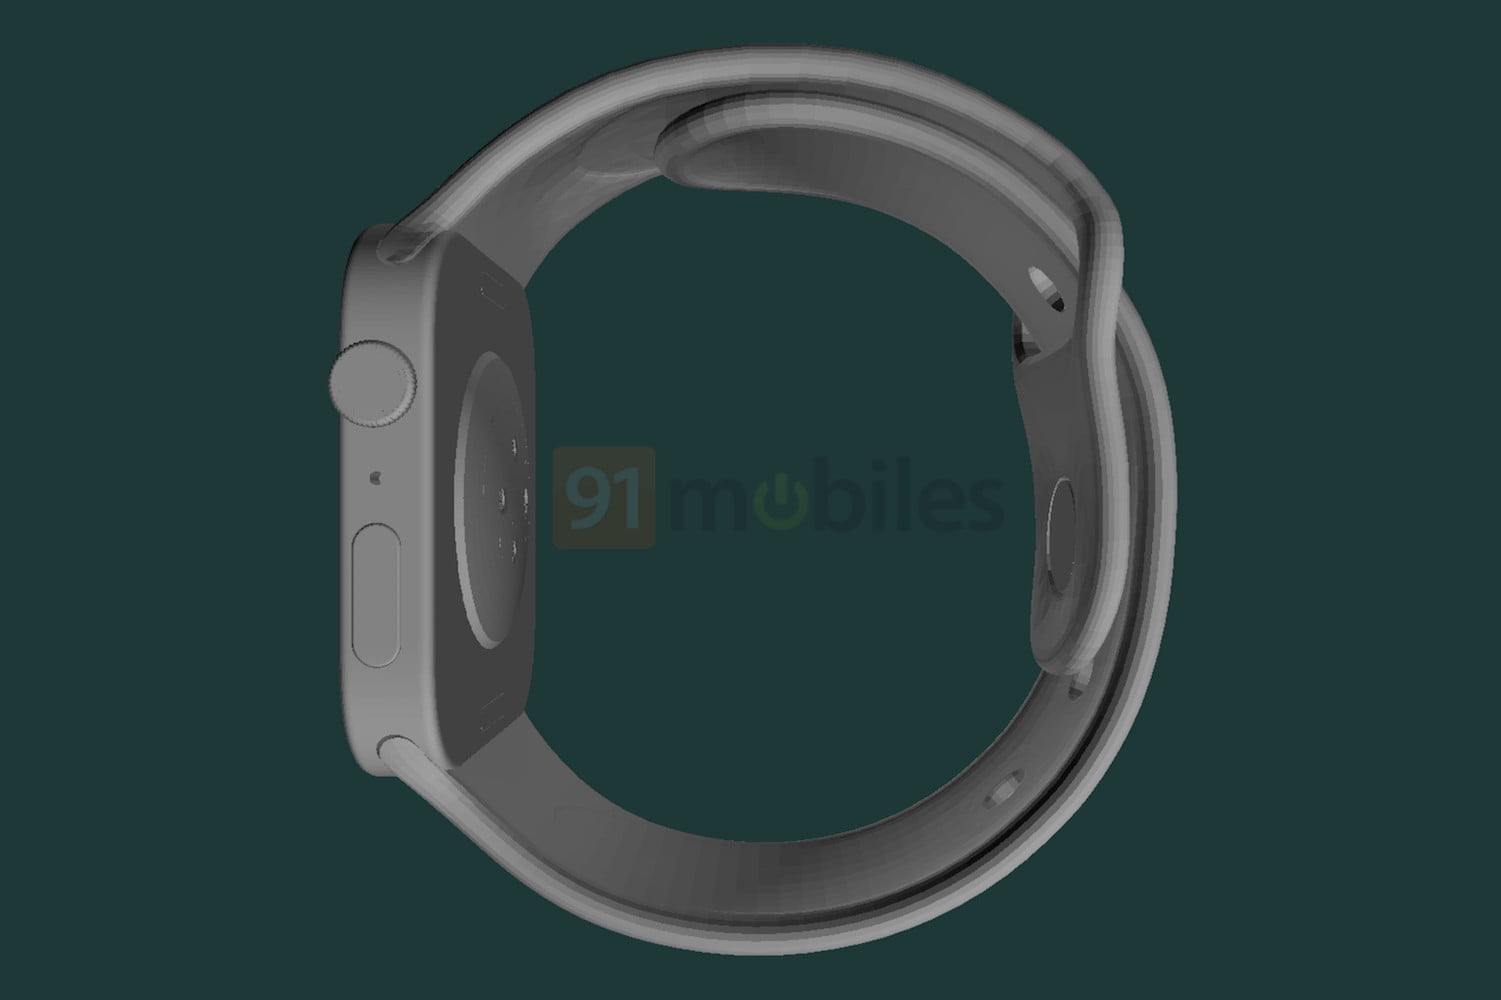 A render of what the Apple Watch Series 7 may look like.